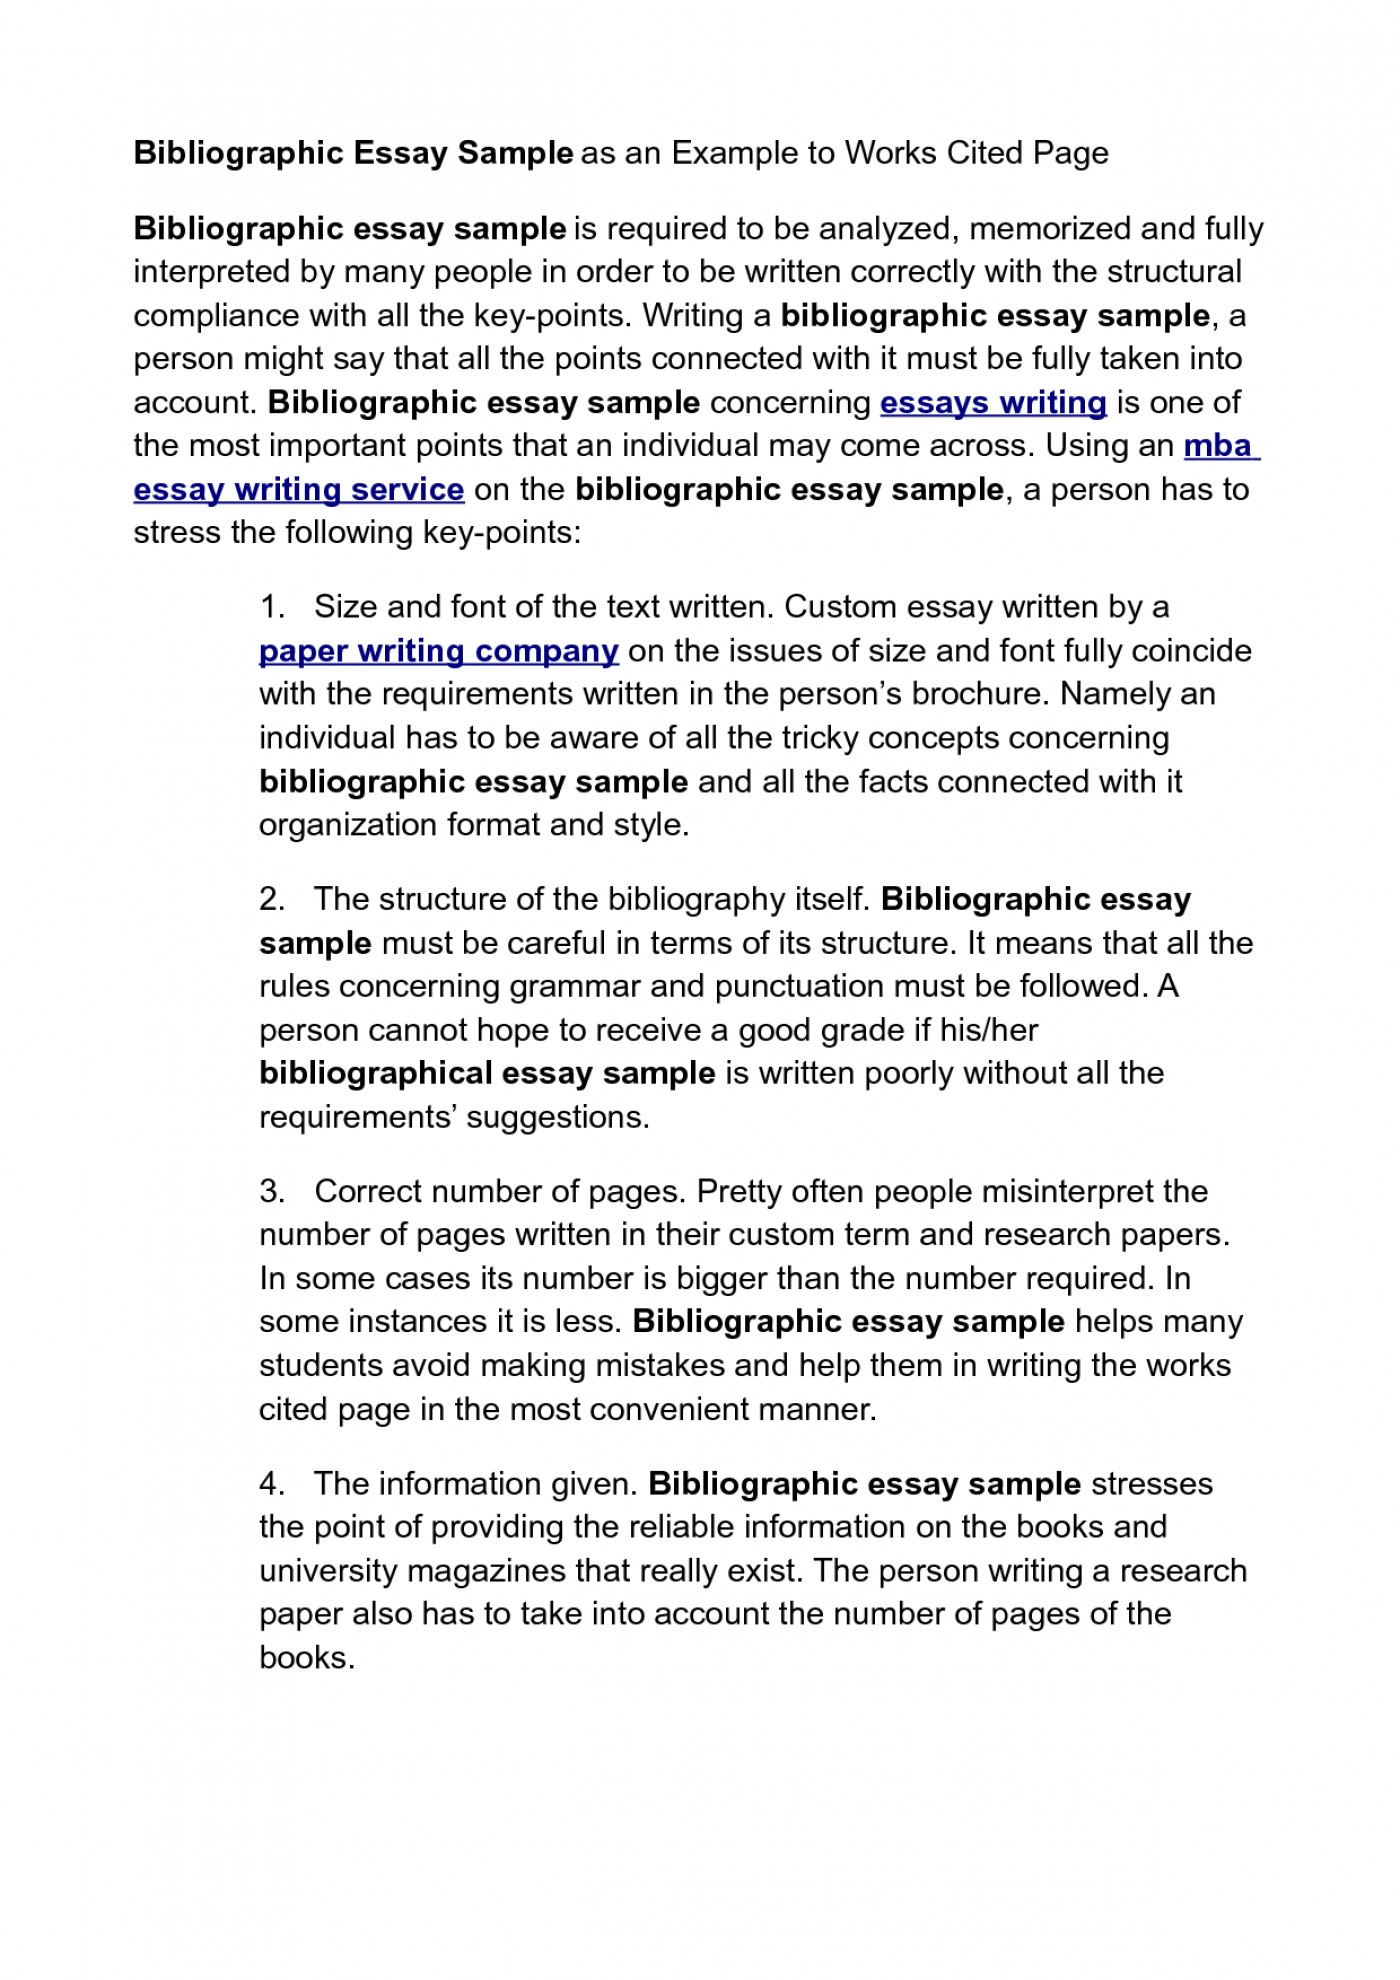 018 How To Cite An Essay Example Sample Persuasive With Works Cited Of Mla L Archaicawful In A Book 8th Edition 1400